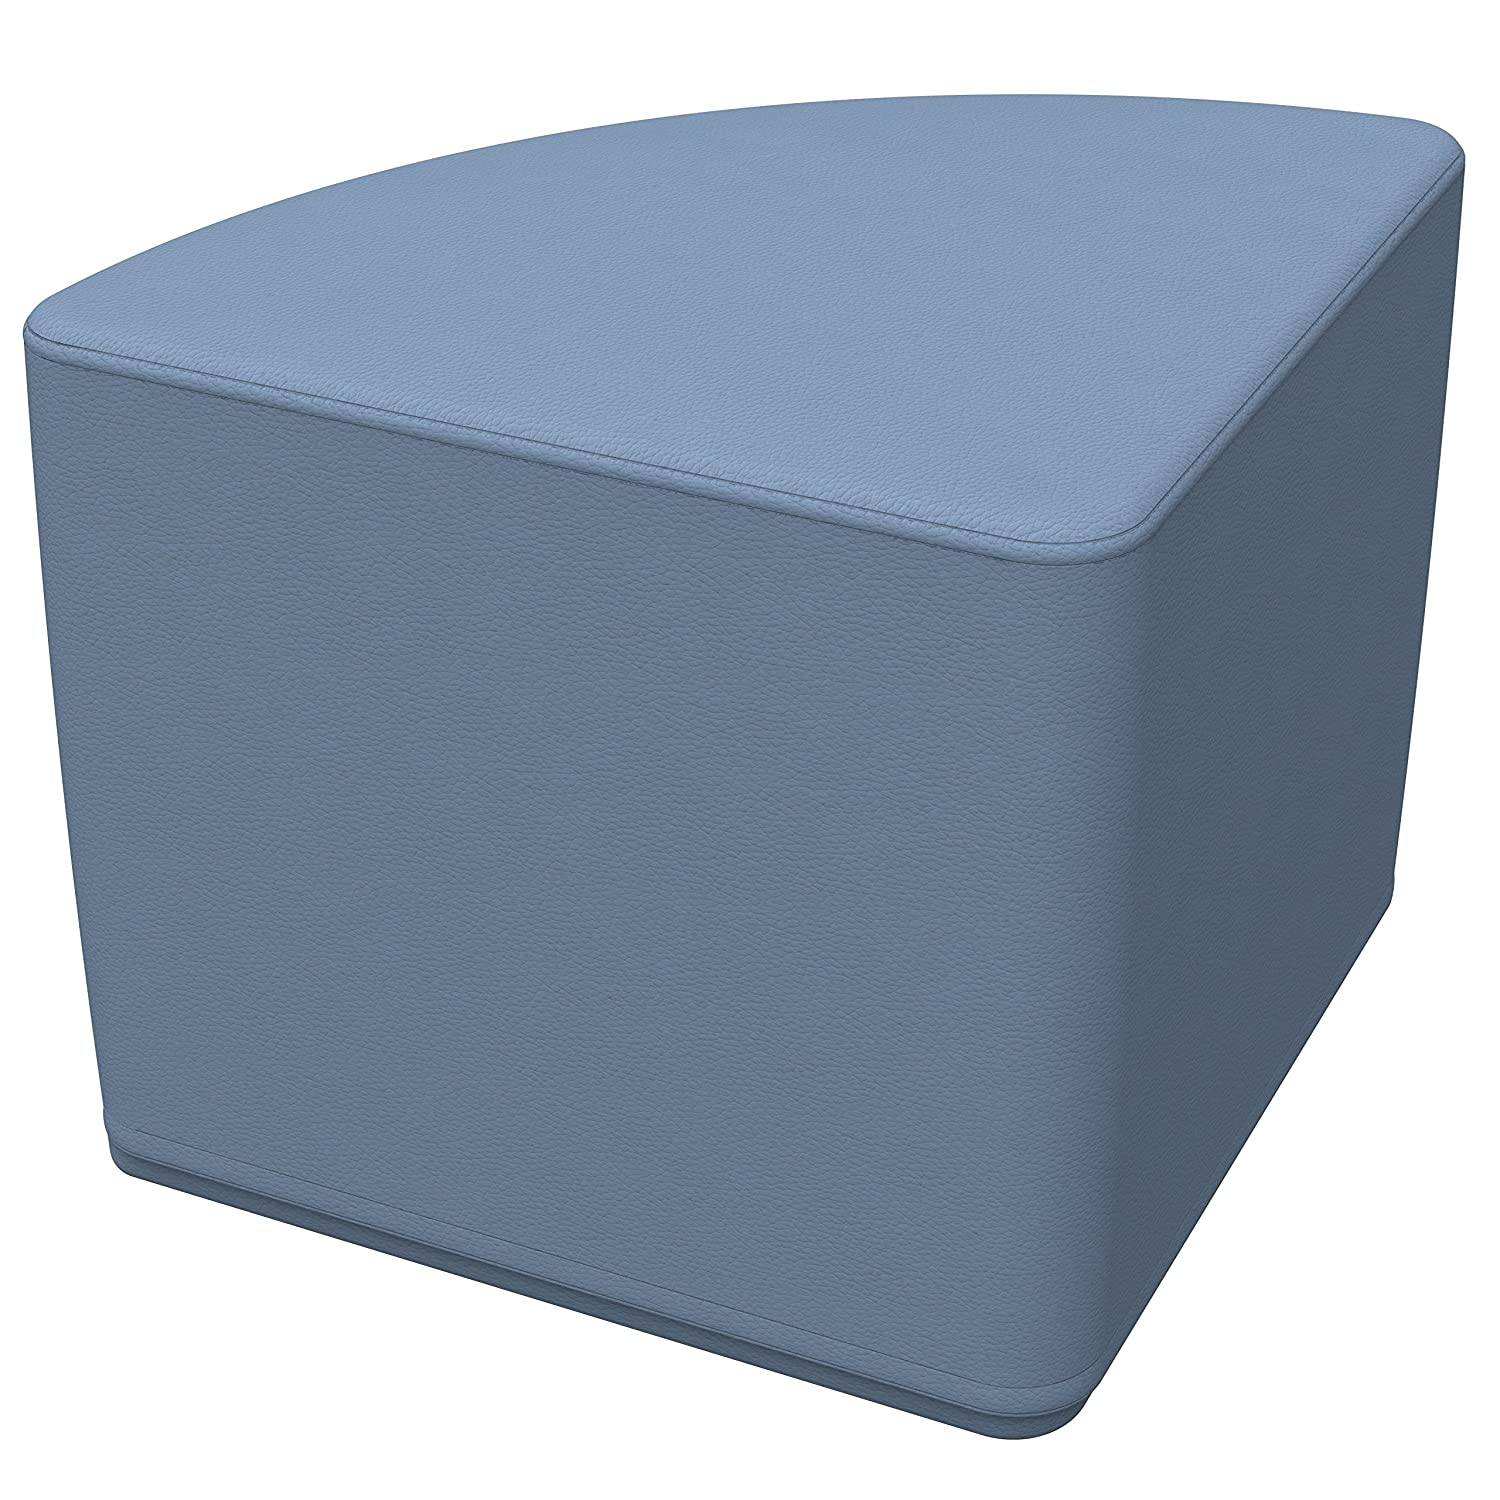 ECR4Kids Softzone Pie Ottoman - Standard for Sale Furniture Kids Today's only 16